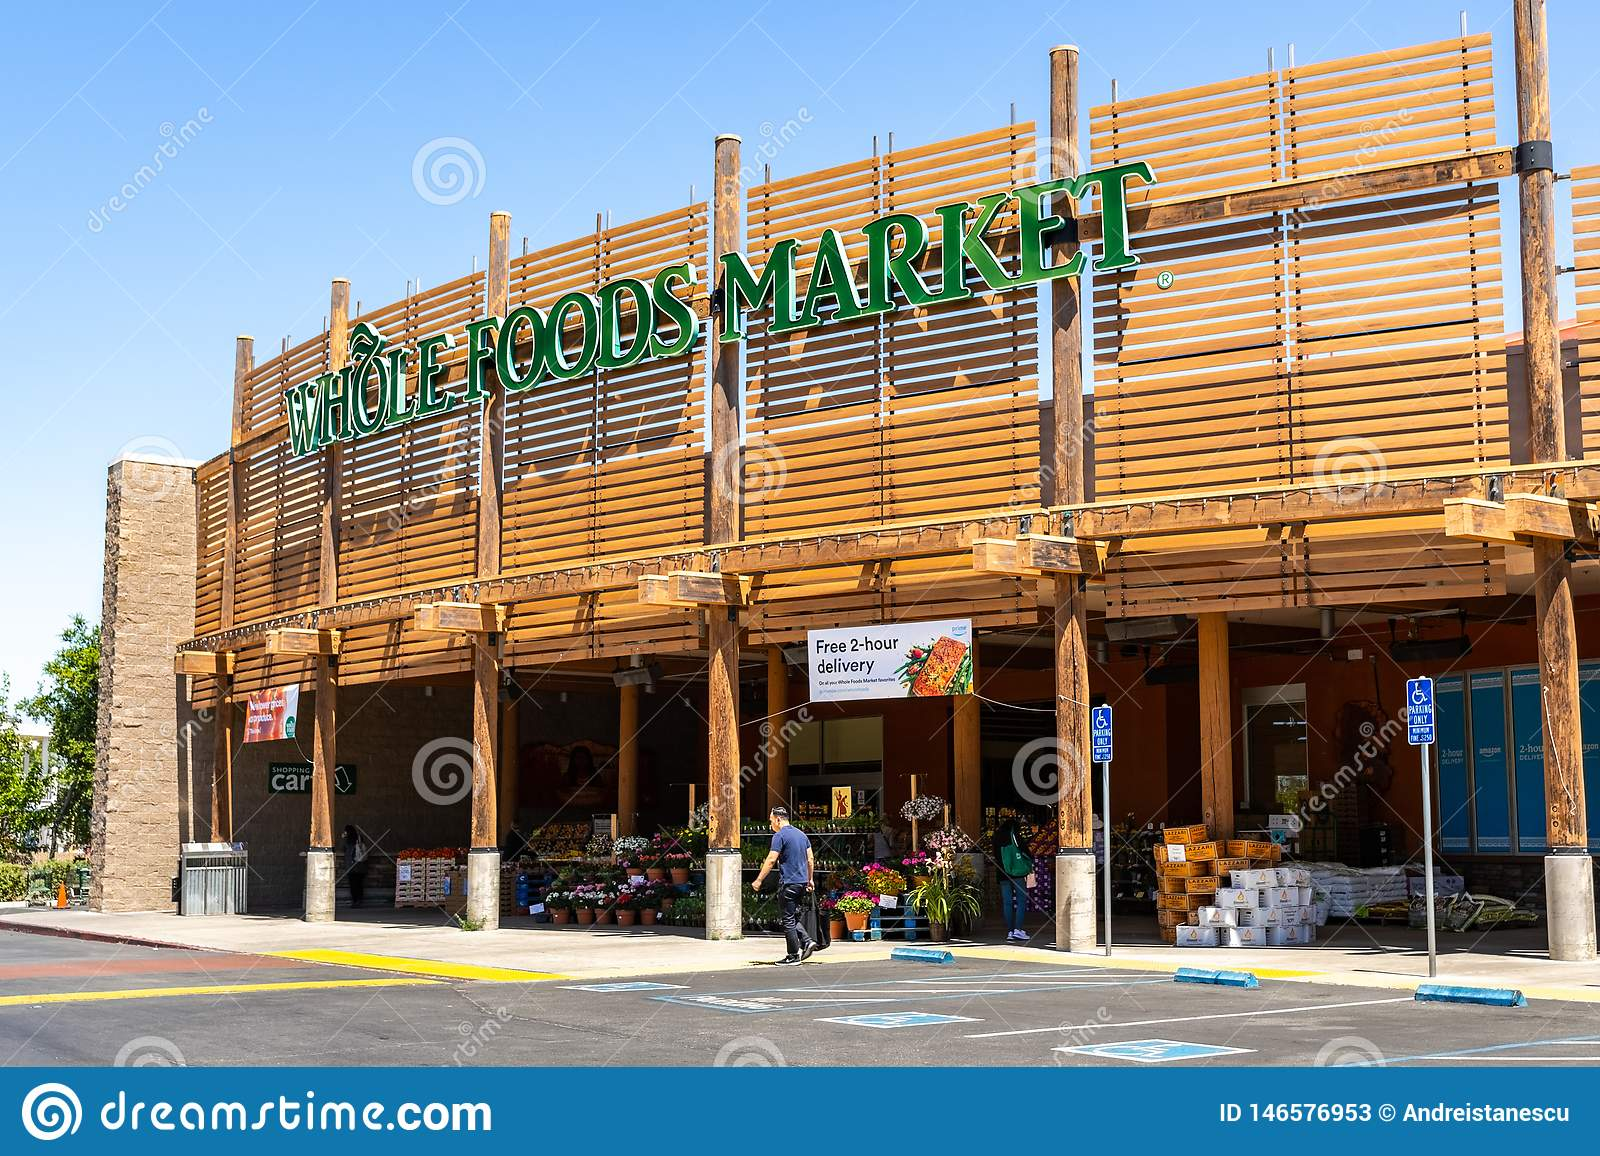 2 mai 2019 Cupertino/CA/Etats-Unis - magasin du marché de Whole Foods situé dans la région de San Francisco Bay du sud